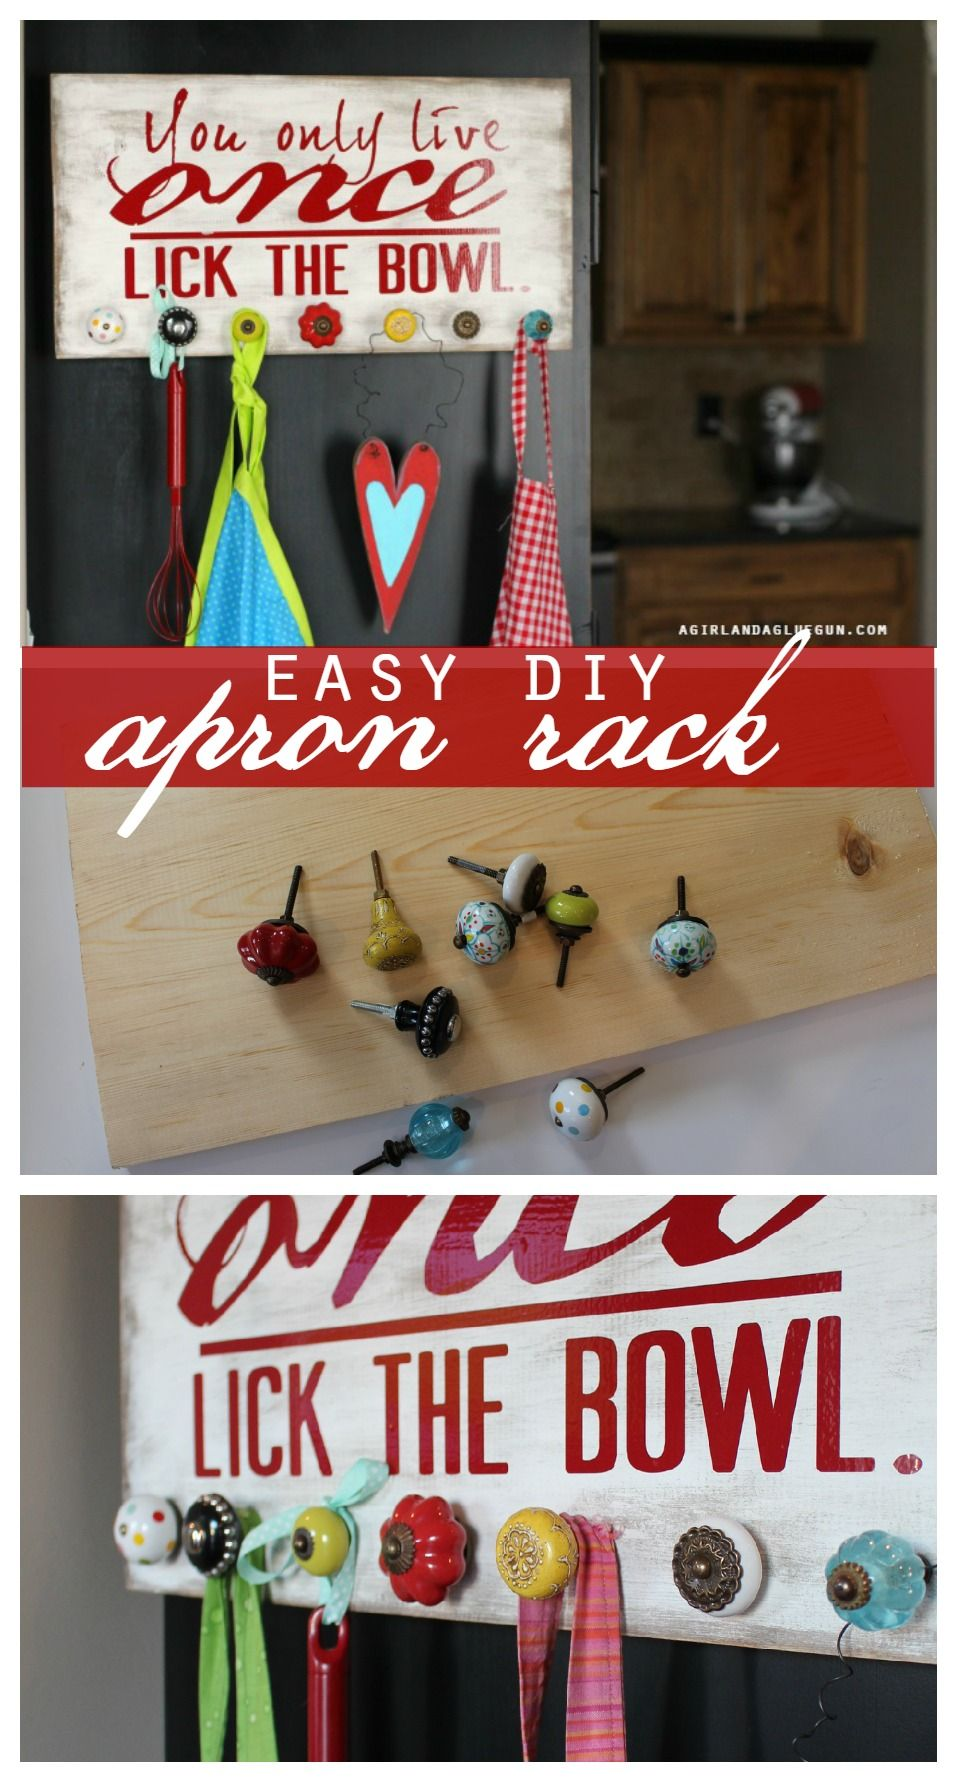 Vinyl palooza home ideas pinterest apron easy and for Home craft expressions decor